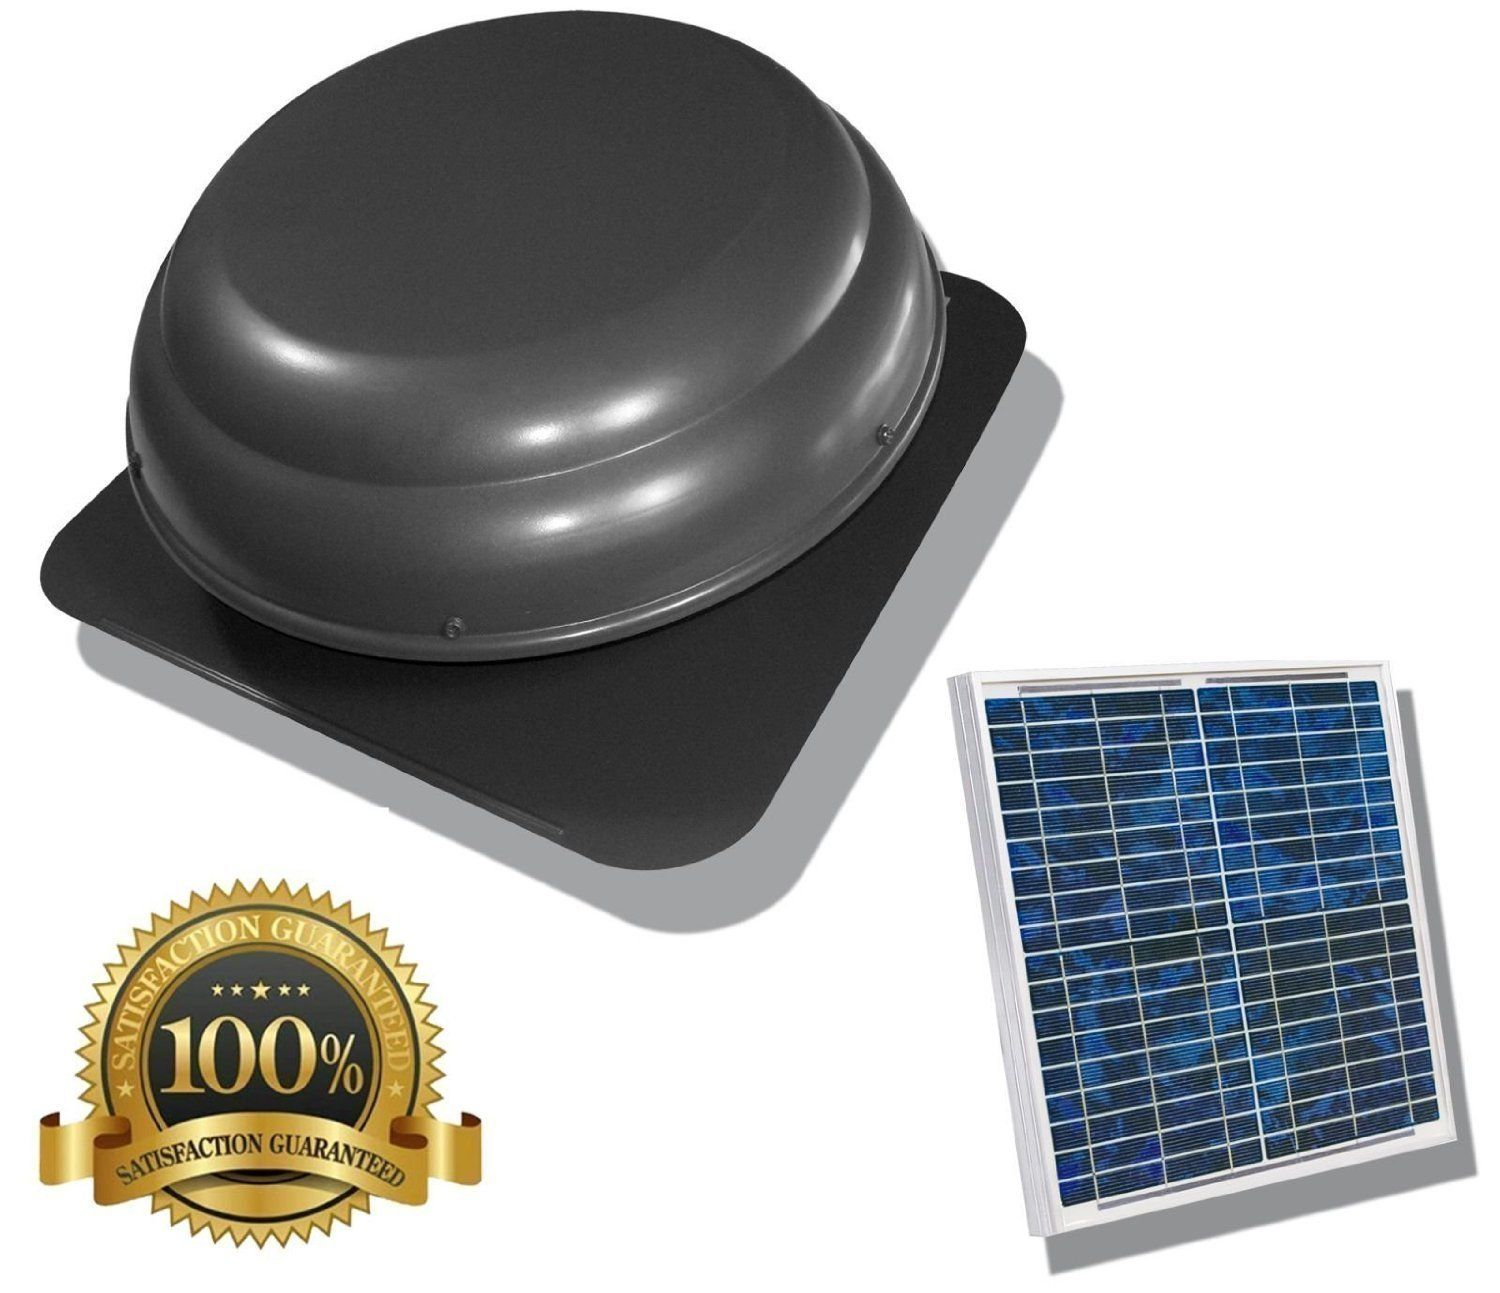 Premium Solar Attic Fan Ultra Efficient Brushless Dc Motor Rust Protective Material You Can Solar Attic Fan Solar Powered Attic Fan Solar Panels For Home